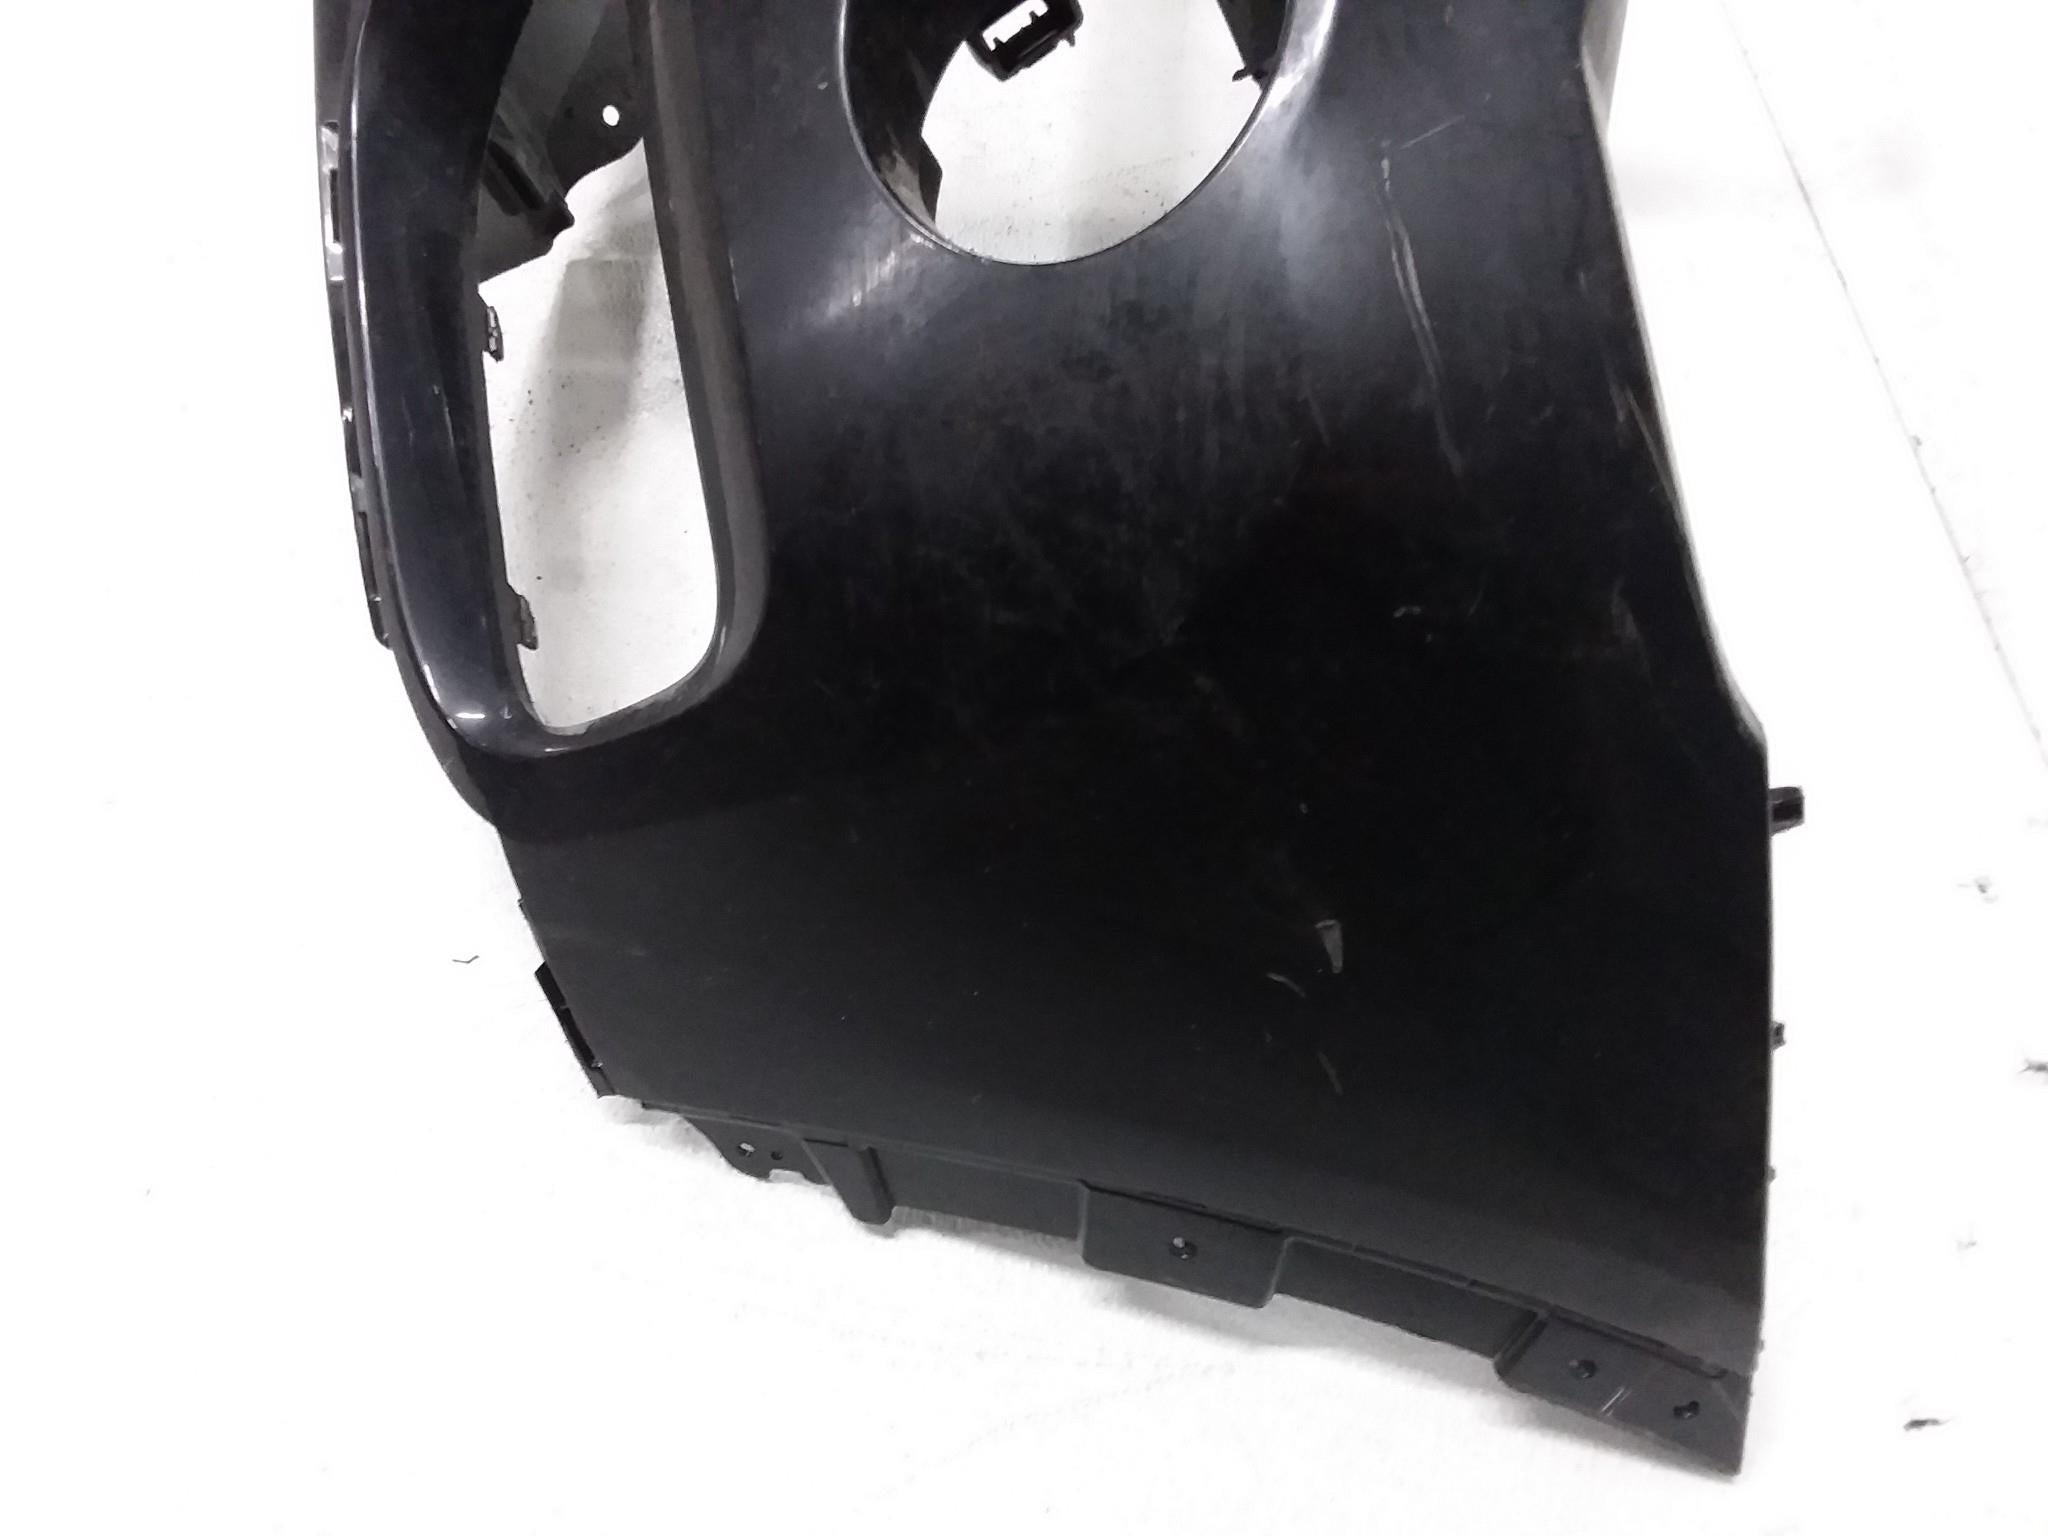 2015 2016 2017 BMW X3 FRONT BUMPER COVER BLACK 7338534 OEM